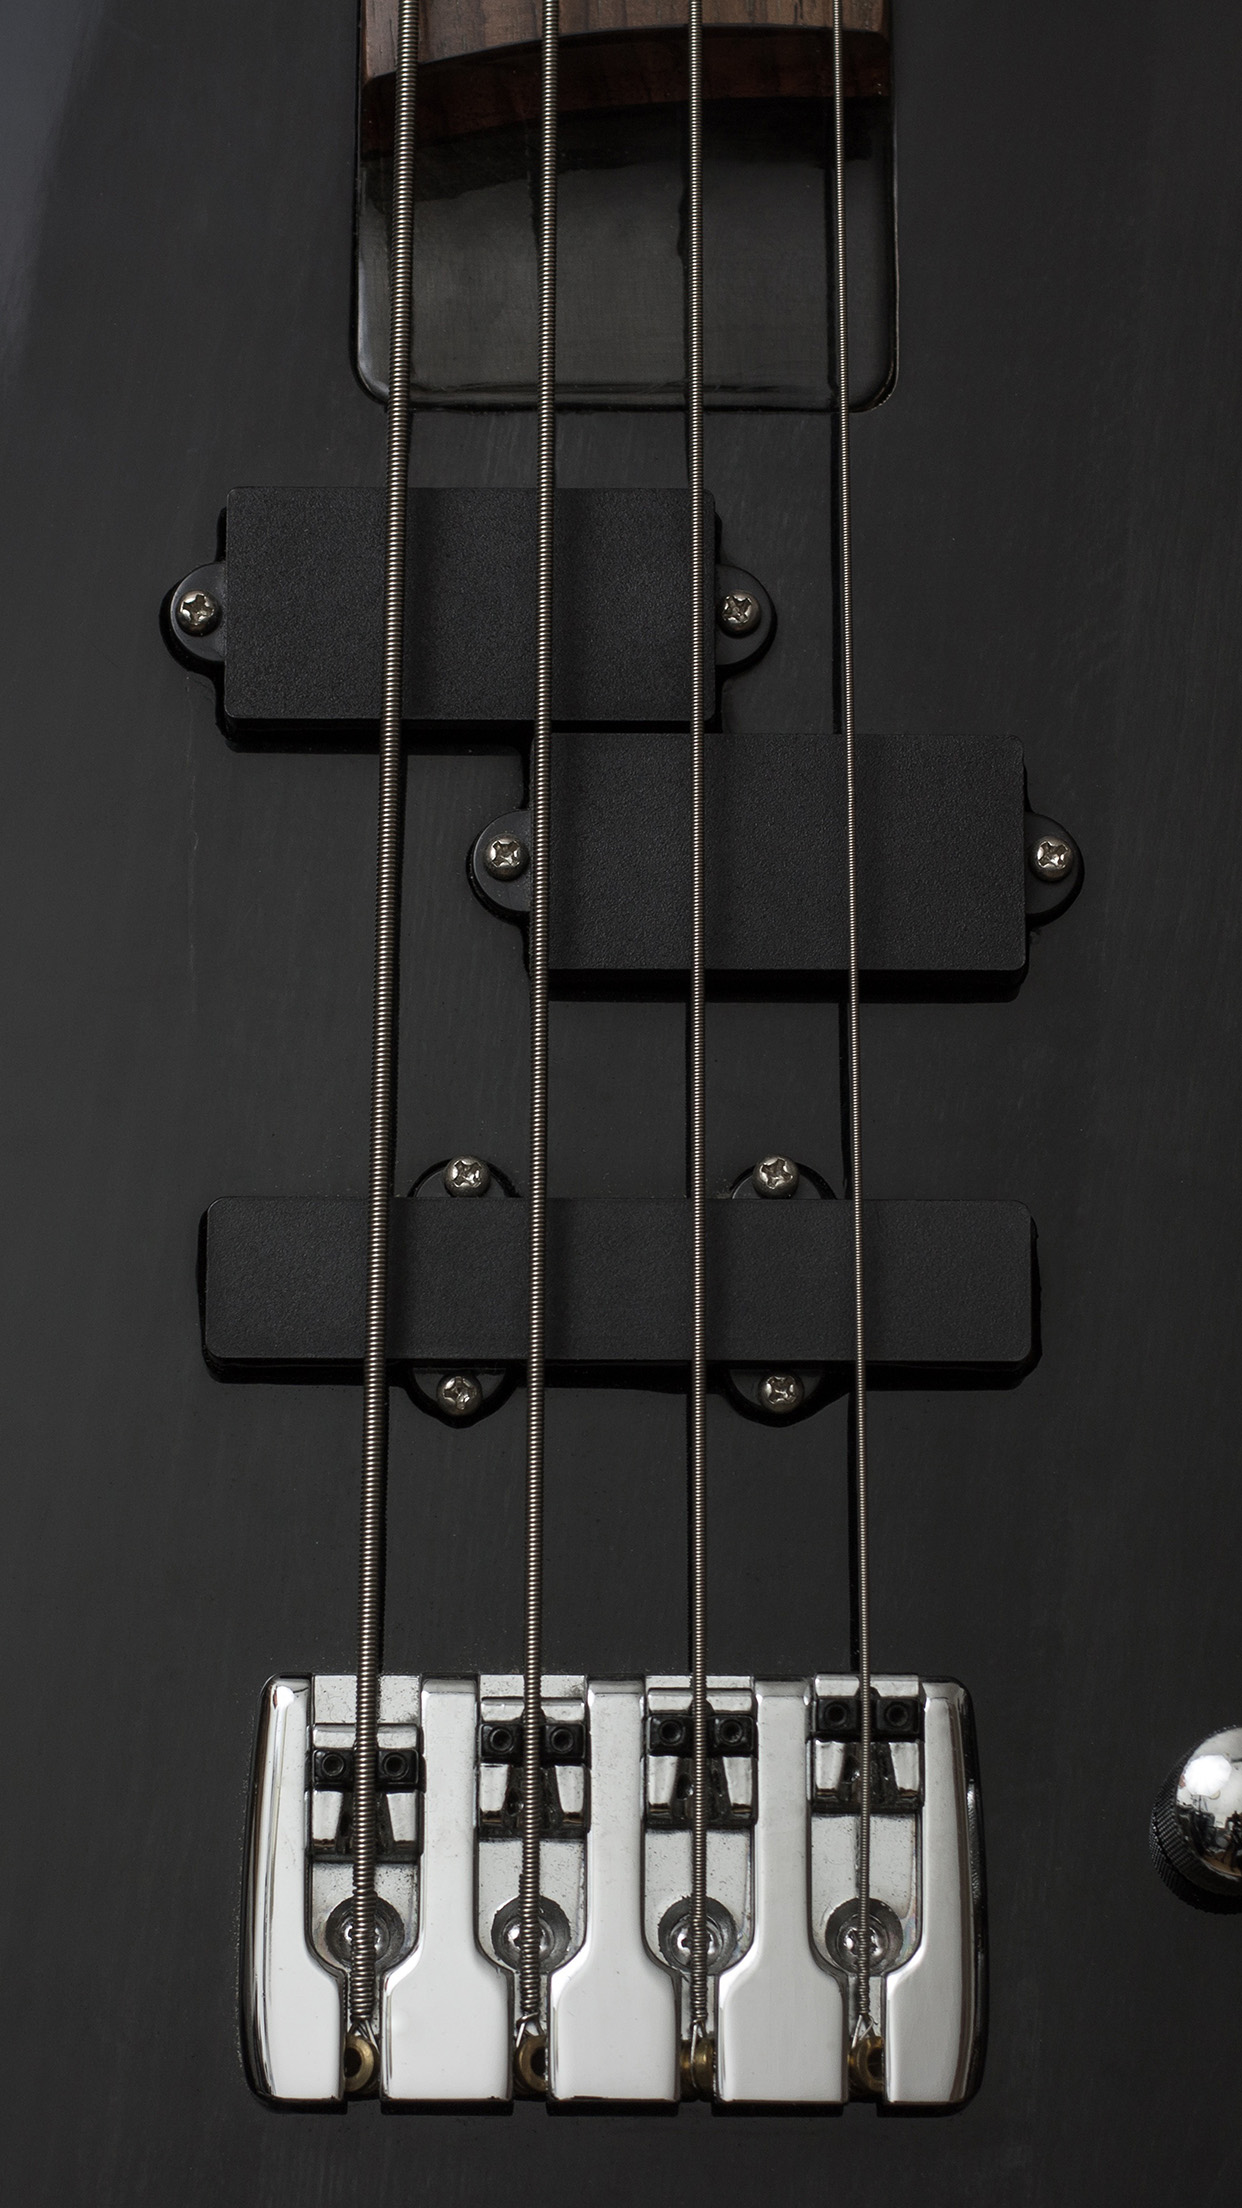 Iphone7paperscom Iphone7 Wallpaper Au91 Guitar Bass